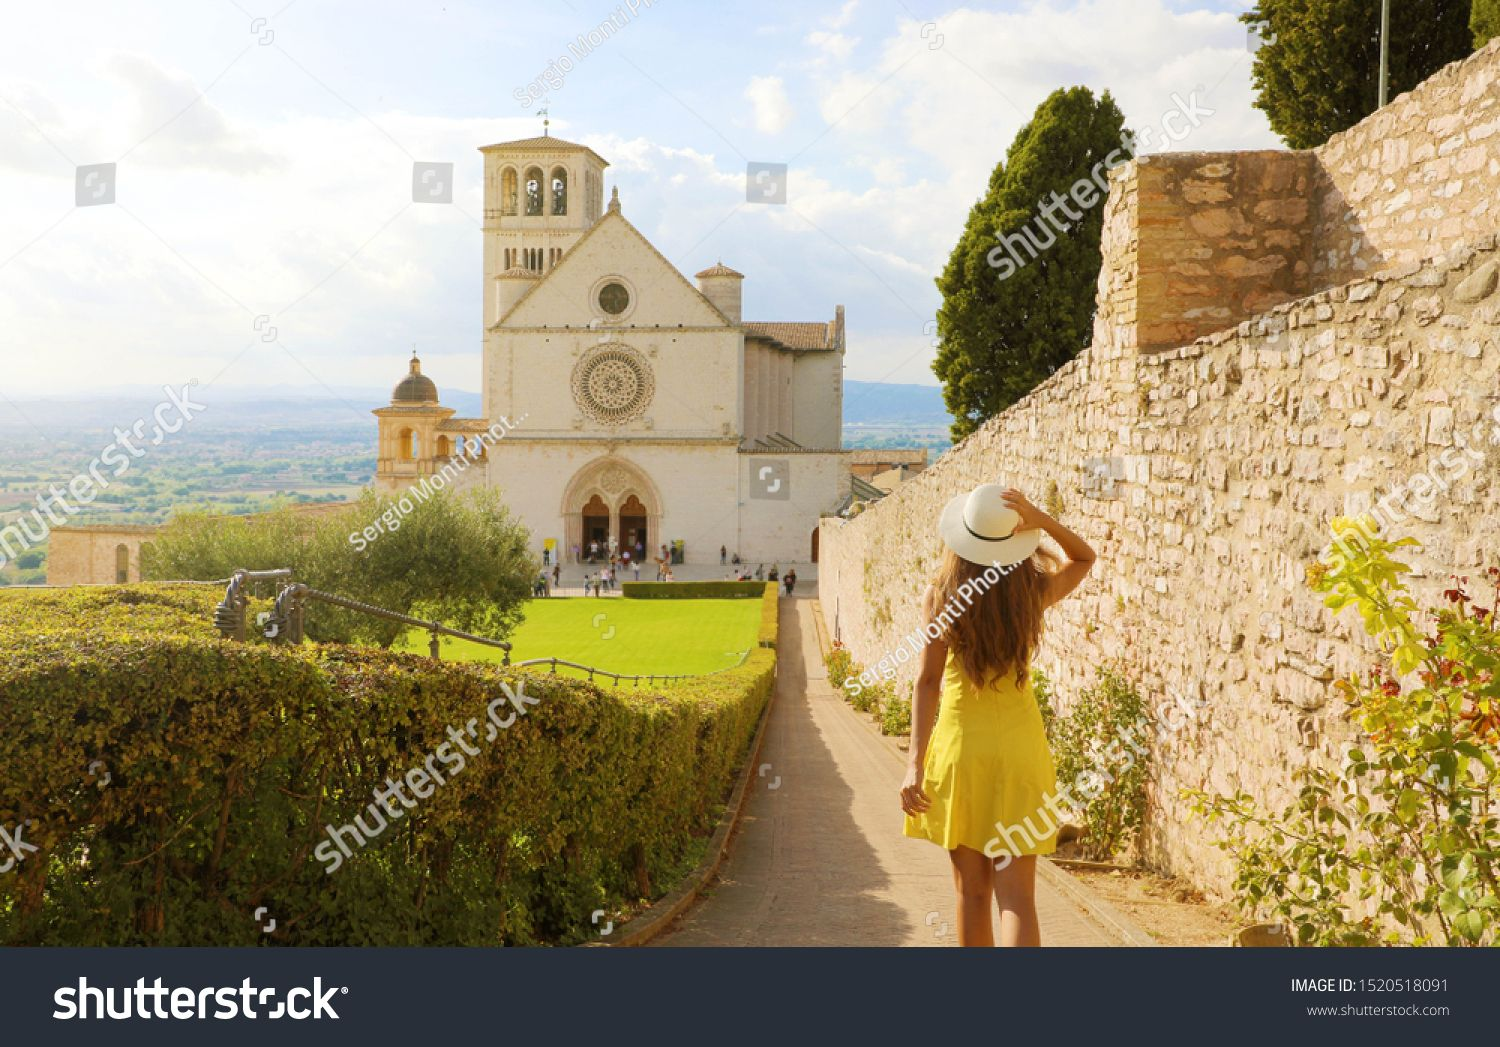 Tourism in Italy. Back view of beautiful girl walking towards the Basilica of Saint Francis of Assi